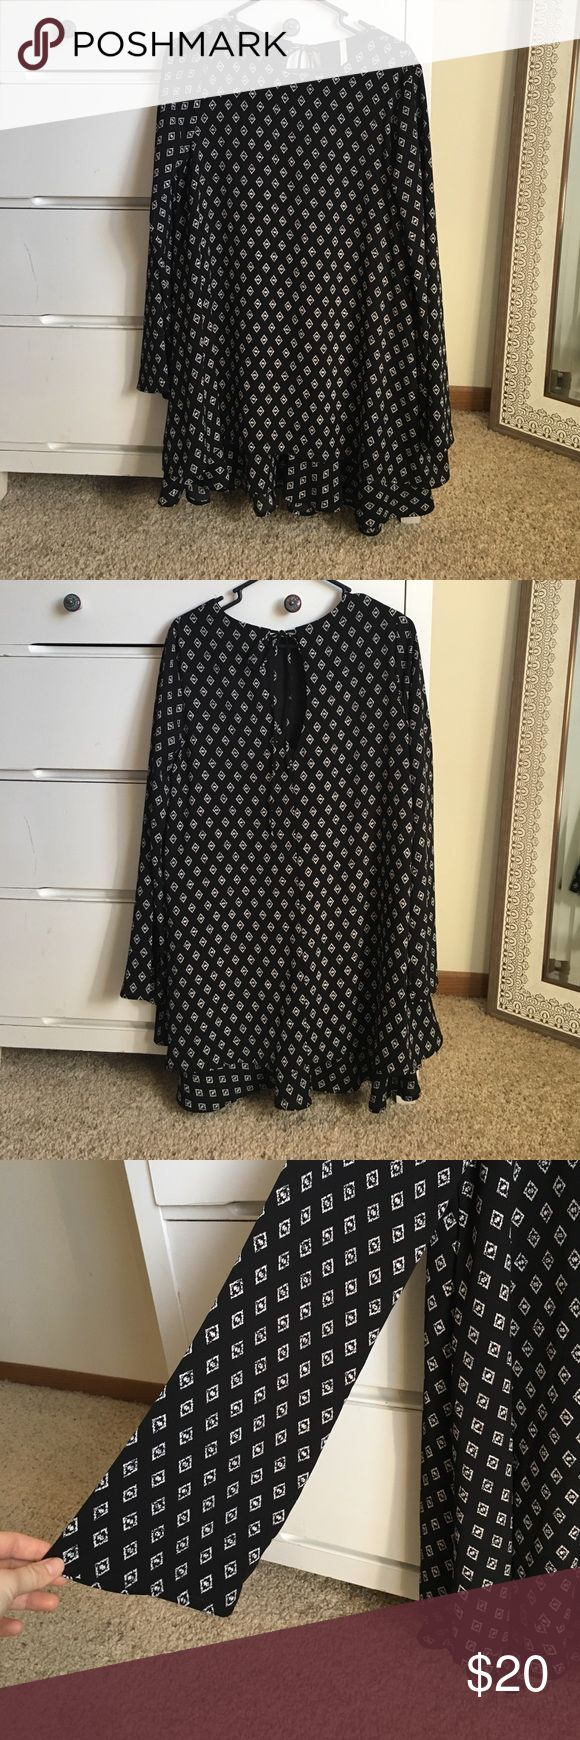 """Patterned Bell Sleeve Dress Purchased from Wish Boutique out of South Carolina. Adorable patterned dress with added layer of frill at the bottom, key hole tie back, and gorgeous bell sleeves. This dress has a modest neckline with a little bit of a tease. I am 5'4"""" and it hit me 2 inches above my knee cap without a belt, and mid thigh with a belt. Worn twice. NO RIPS ! Sage Dresses Long Sleeve"""